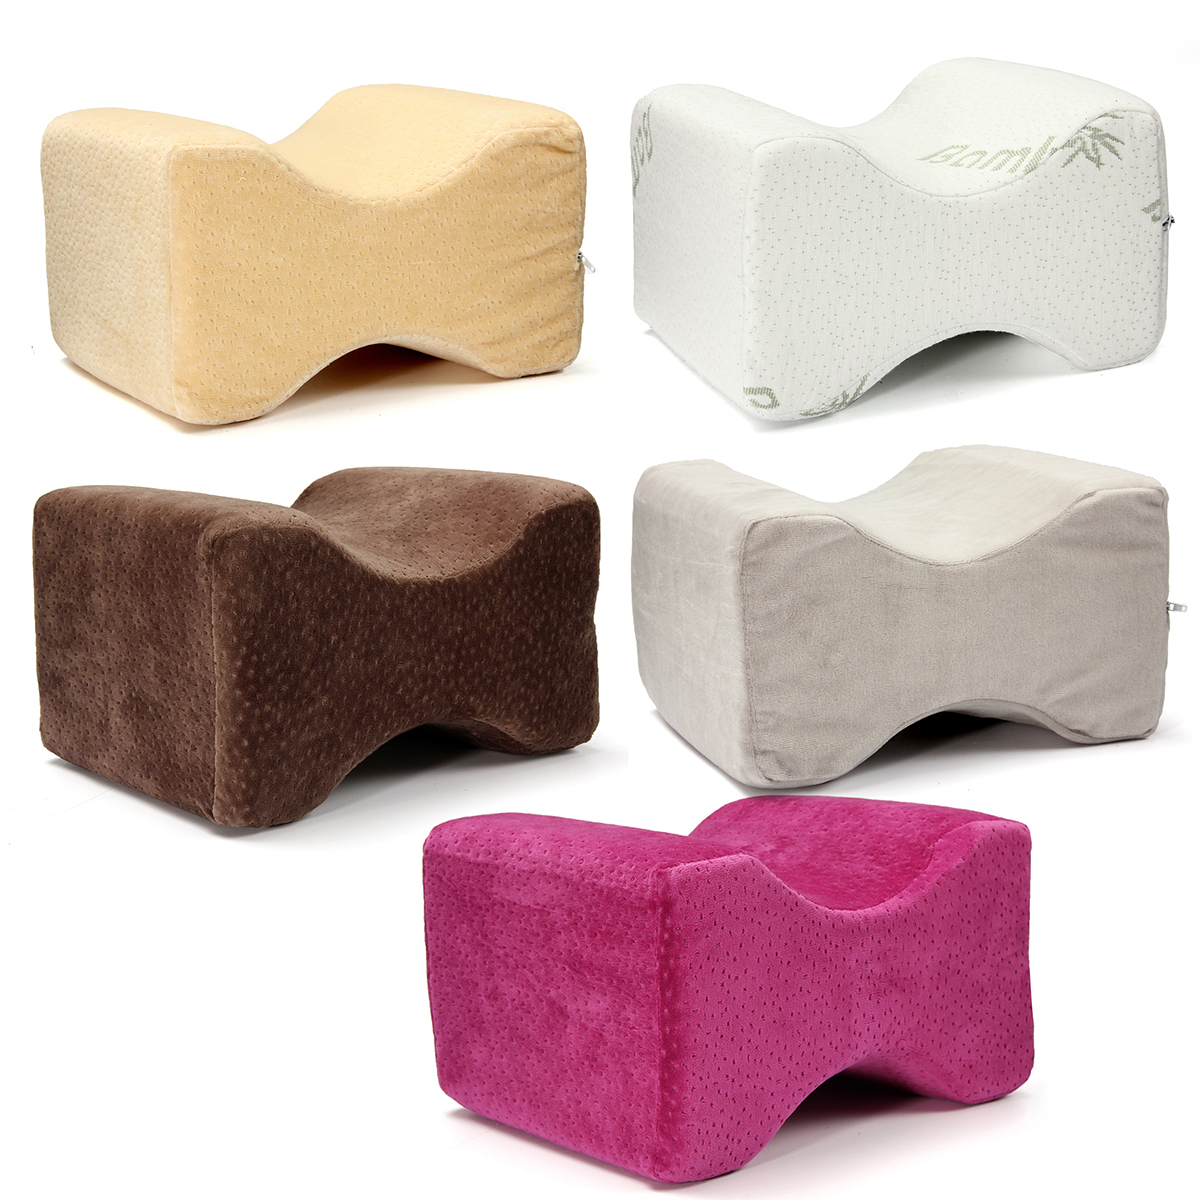 Breathable Memory Foam Knee Pillow Cushion Pain Relief Wedge For Sciatic Nerve Legs Back Sleepers and Pregnancy